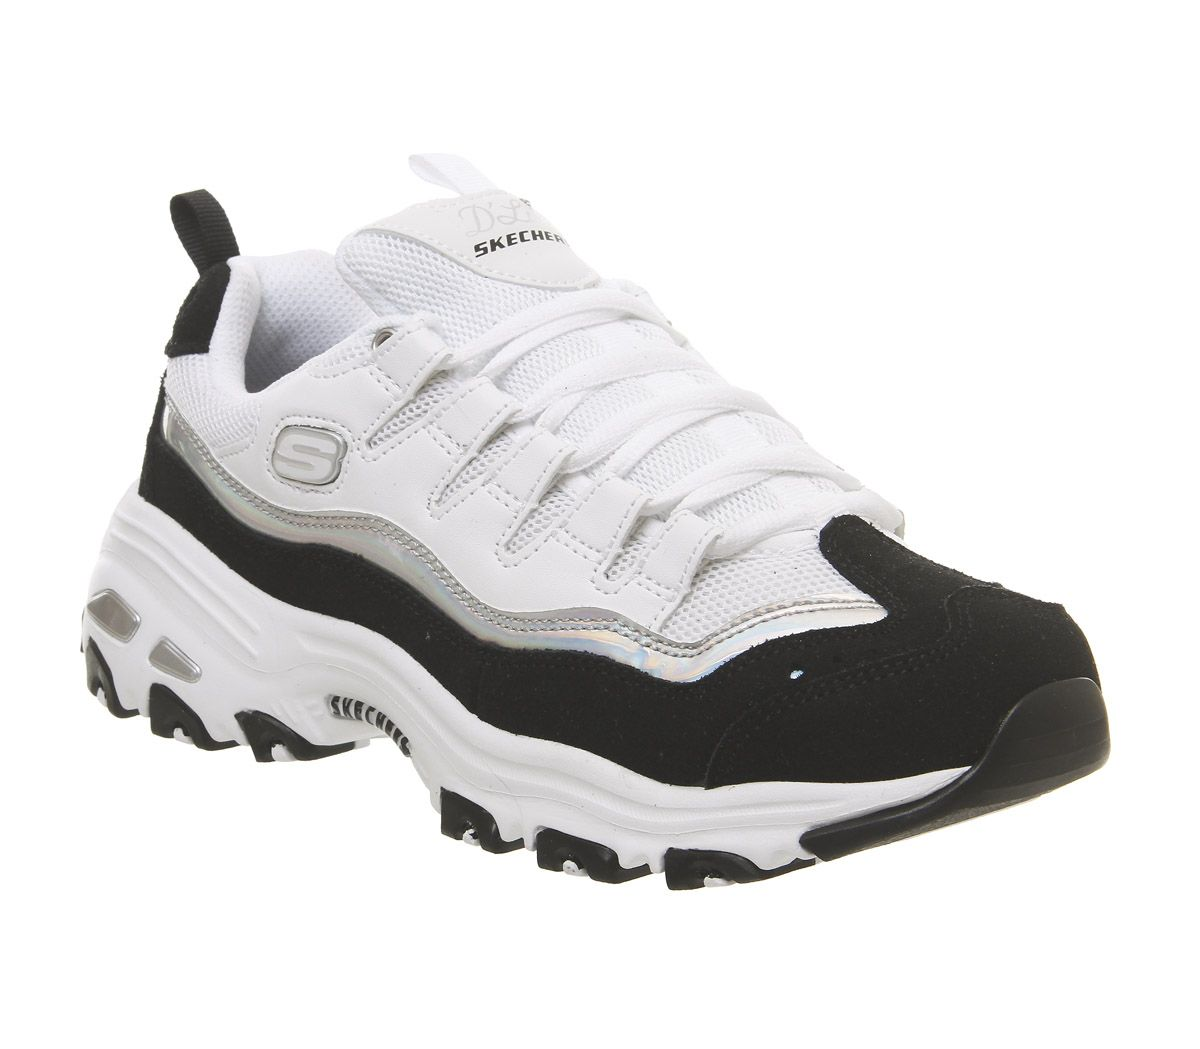 bac44c693b Skechers D'lites Black White Silver - Hers trainers